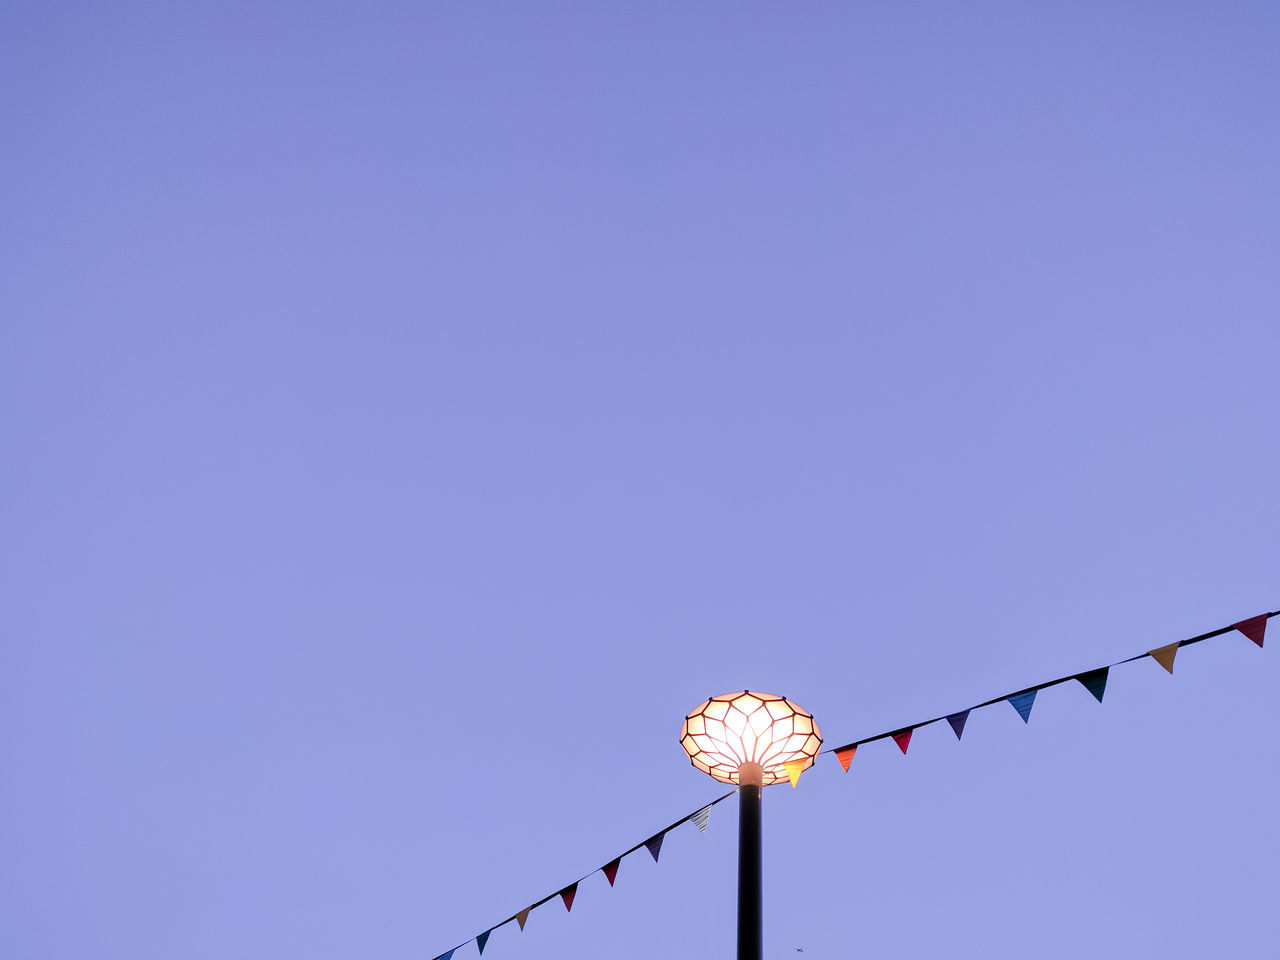 Carneval Carnival Clear Sky Copy Space Day Decoration Electricity  Flags Illuminated Light Post Lighting Equipment Low Angle View Minimal No People Outdoors Park Pastel Sky Street Light Triangles